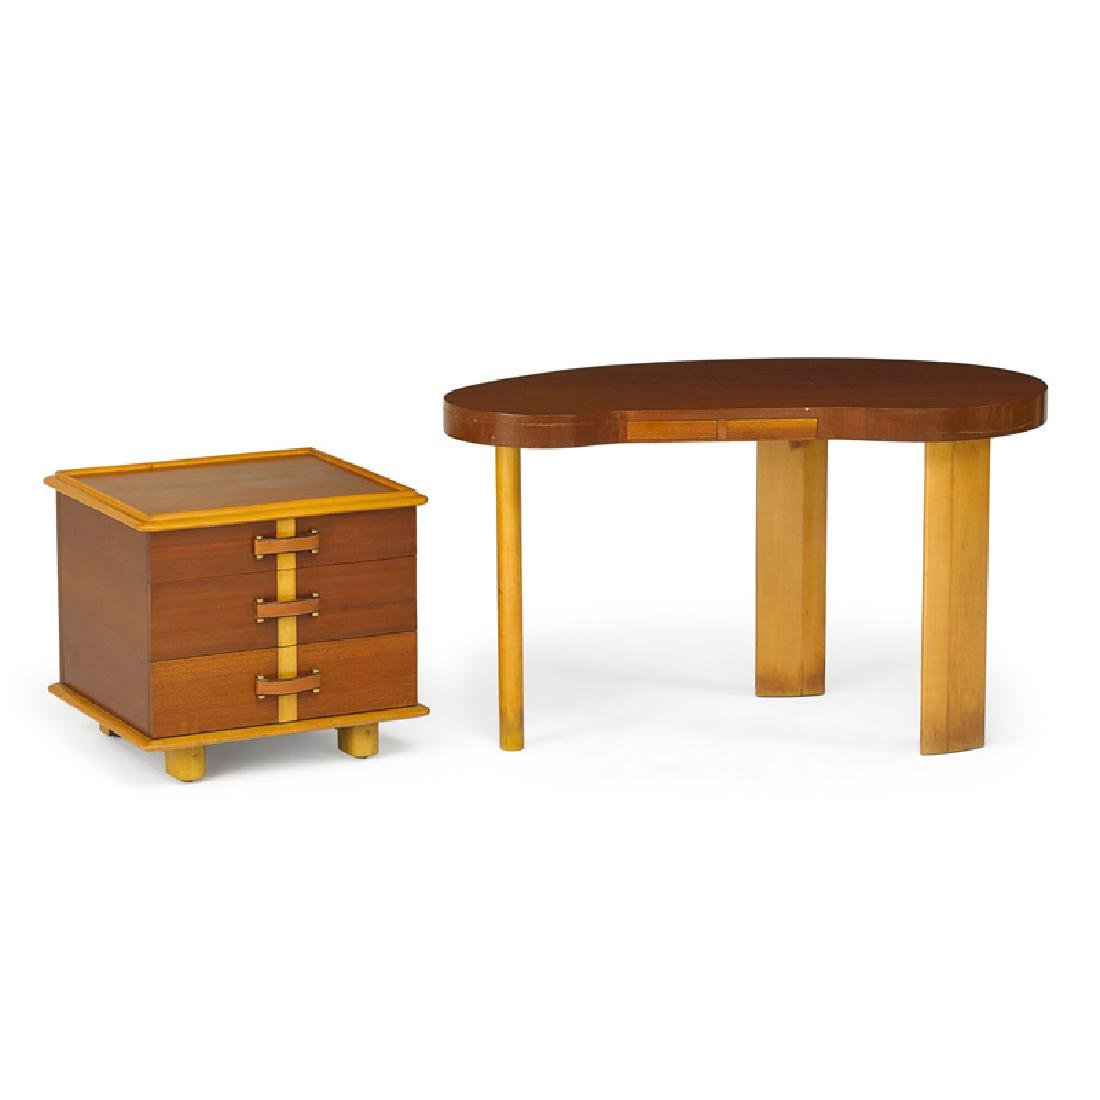 PAUL FRANKL Desk and cabinet